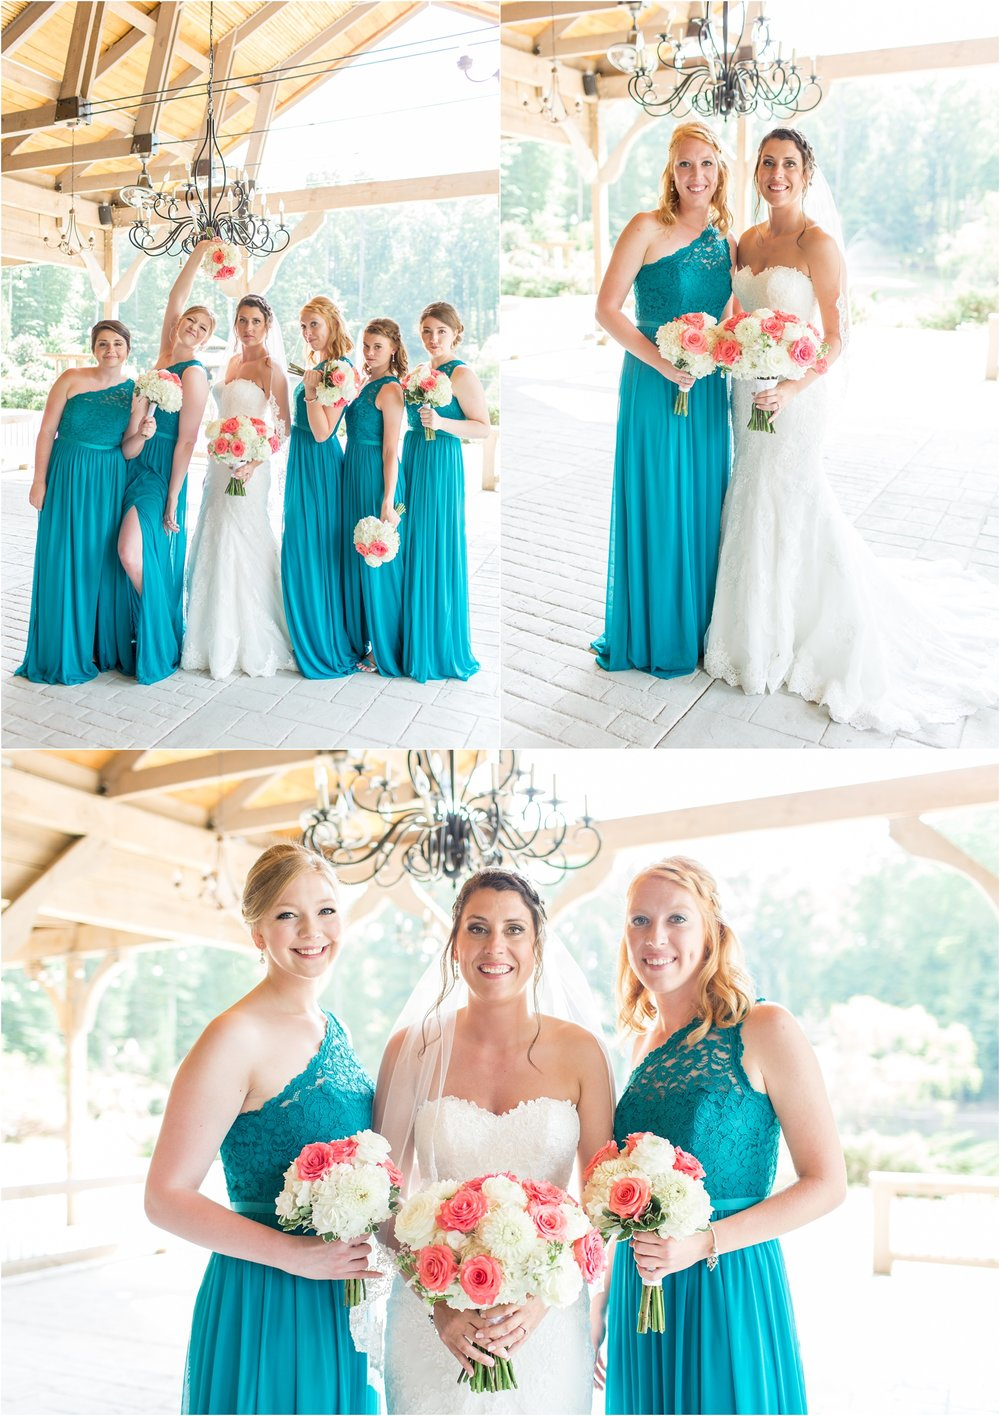 Savannah Eve Photography- Roberts-Brown Wedding- Sneak Peek-21.jpg